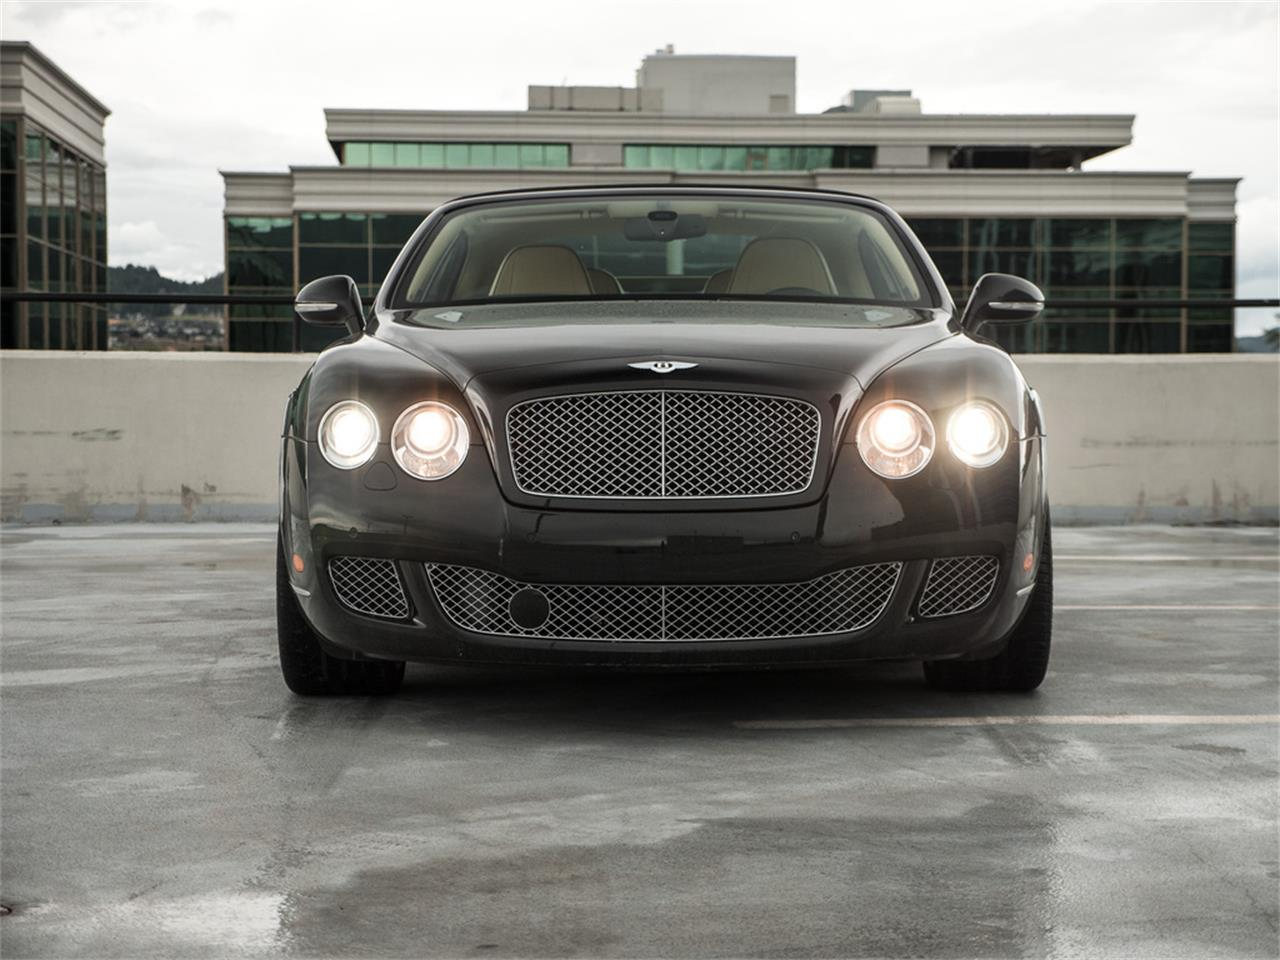 Large Picture of 2011 Continental located in British Columbia - $91,819.00 Offered by August Motorcars - QA5D